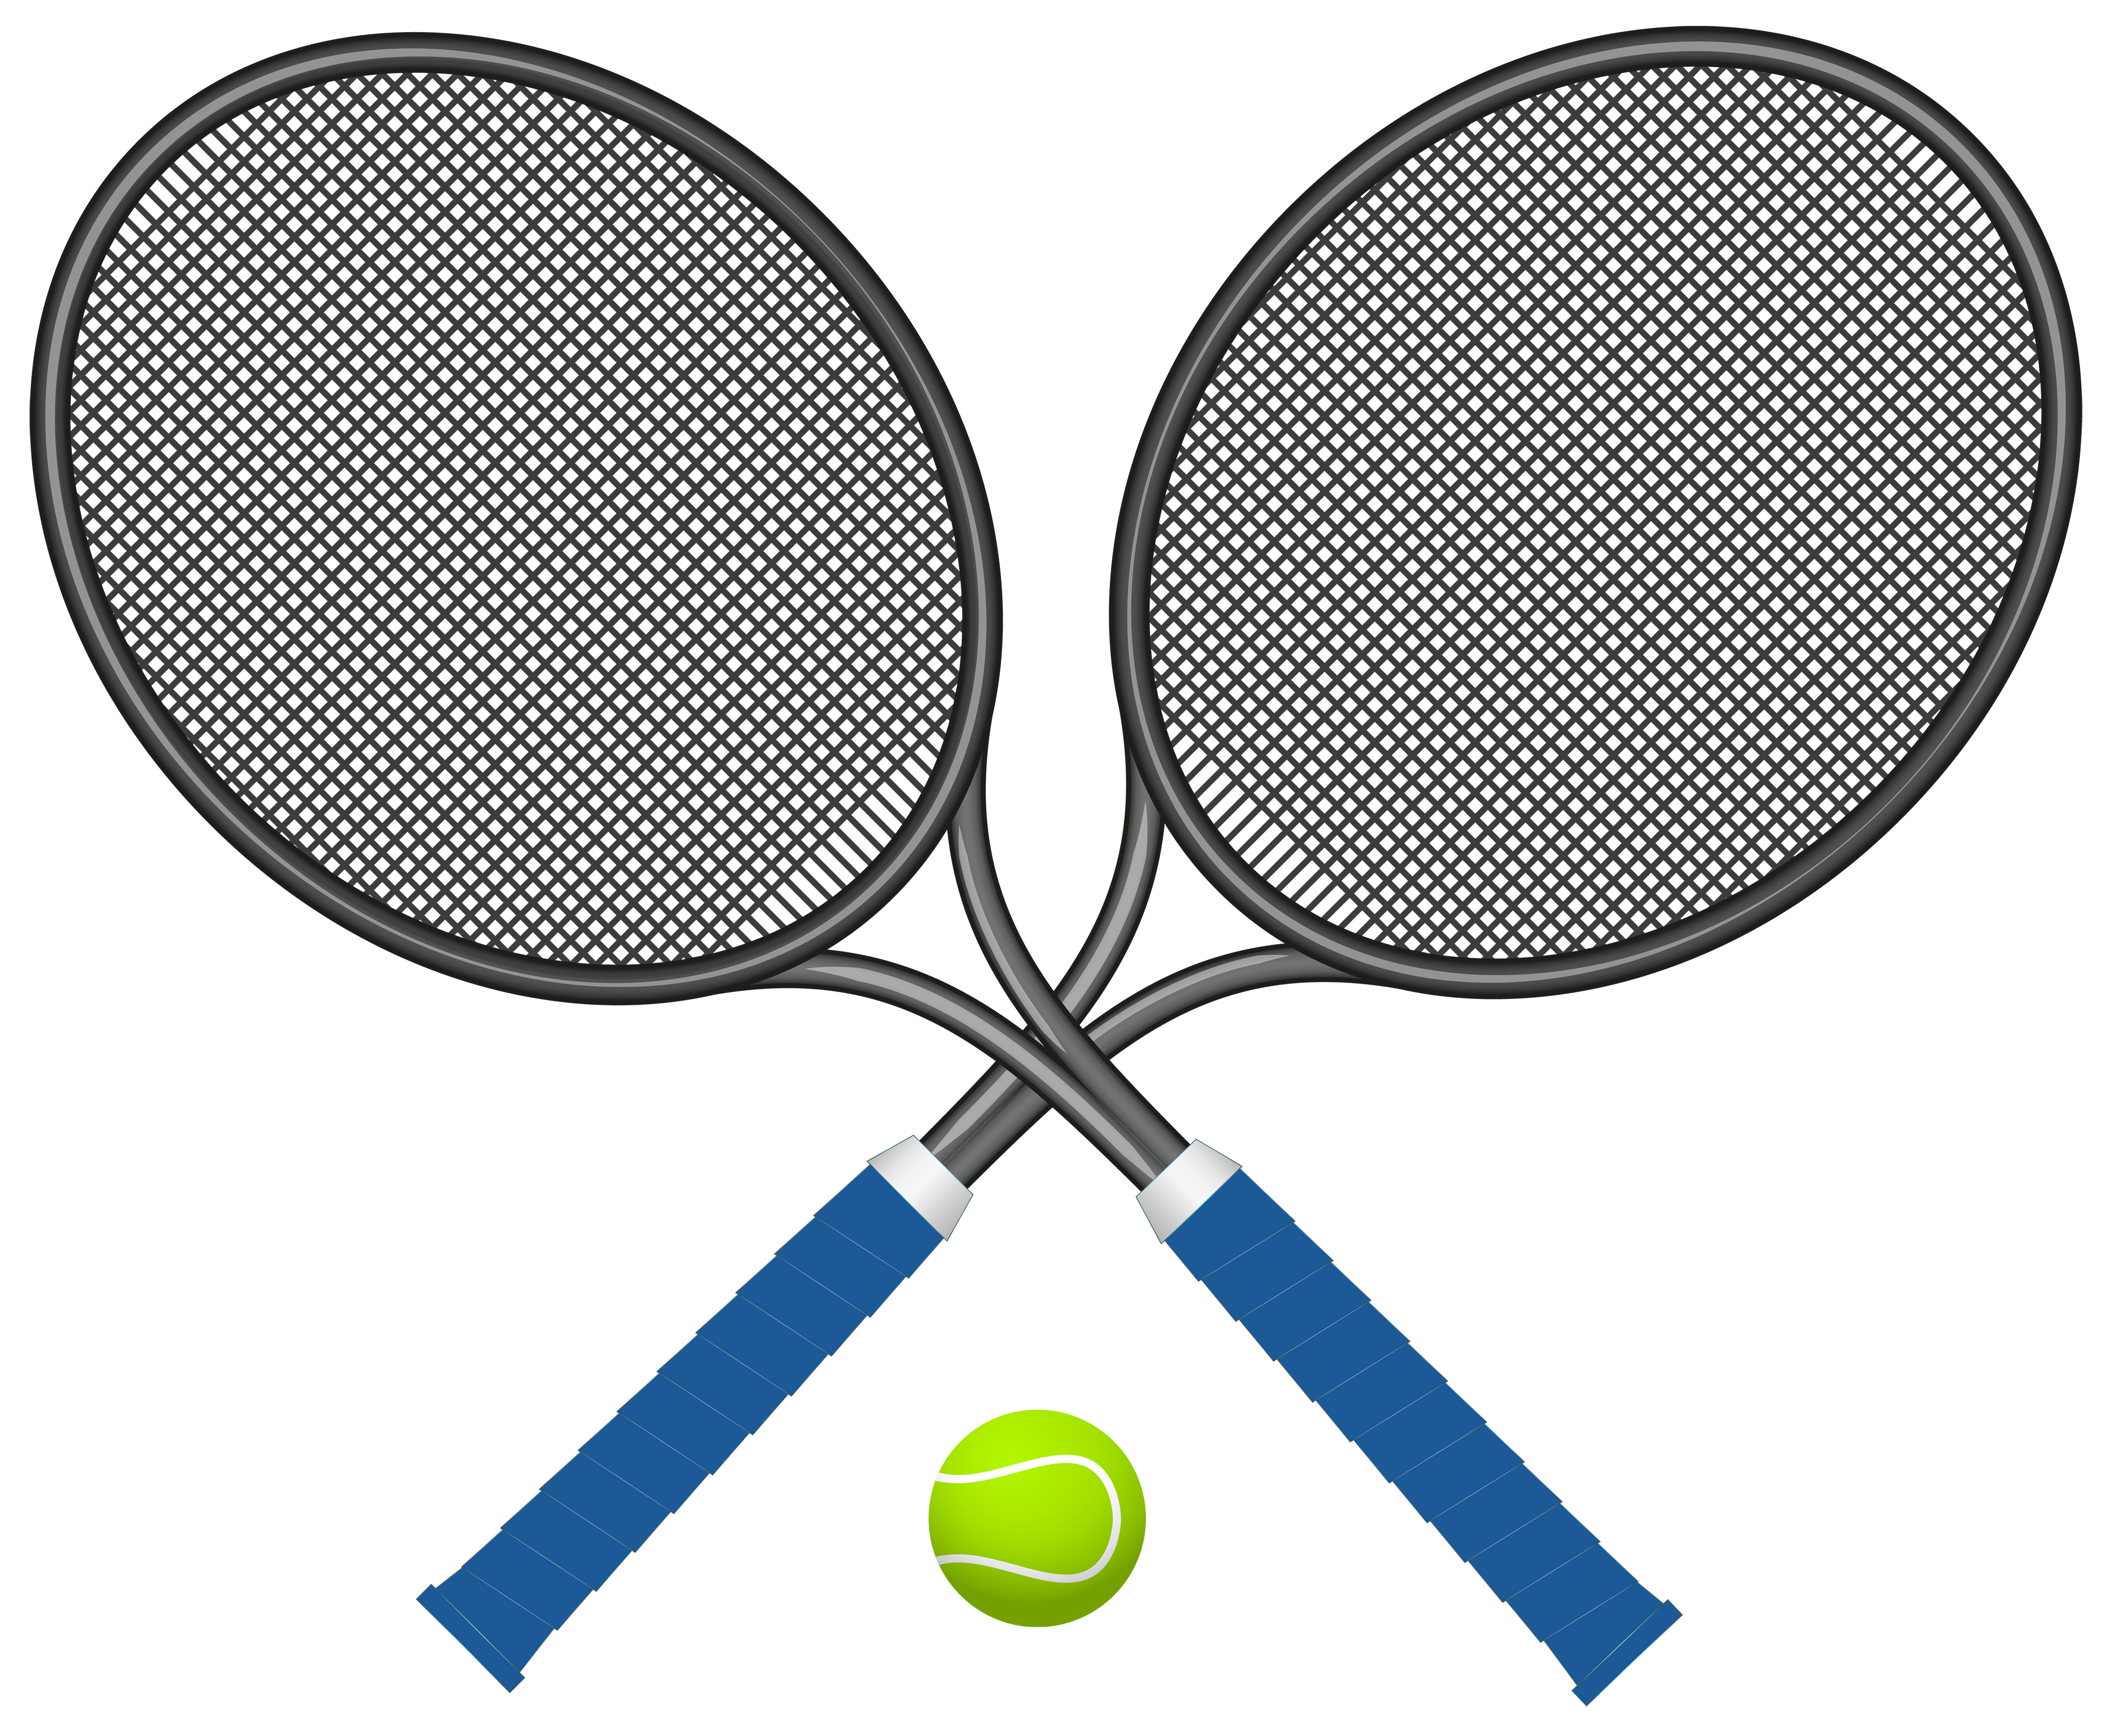 4000x3288 Tennis Rackets With Ball Png Clipart